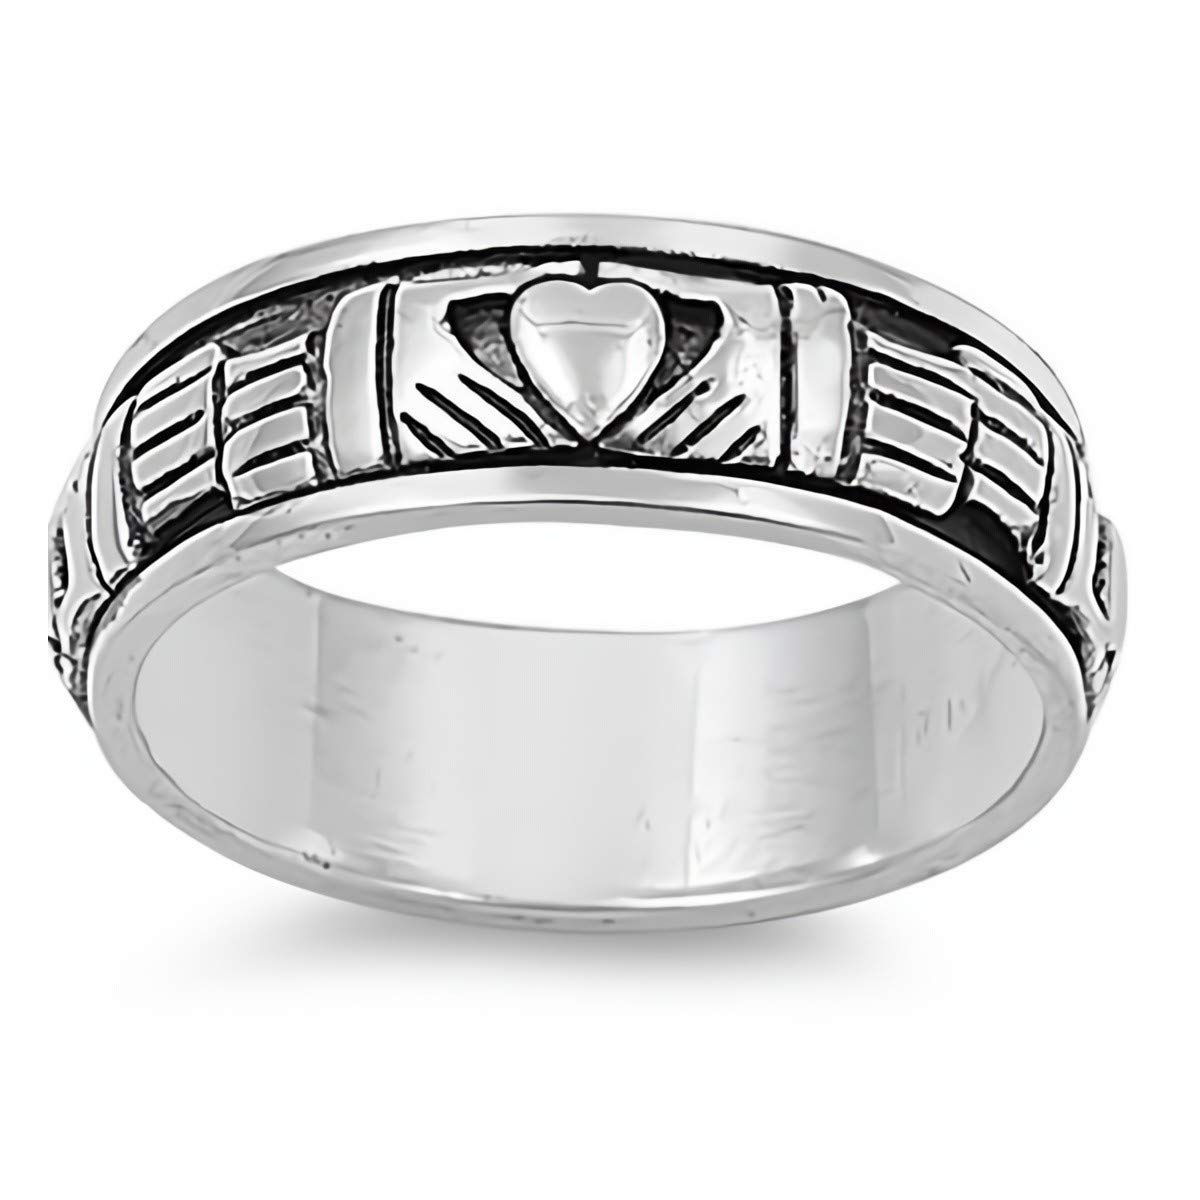 Glitzs Jewels 925 Sterling Silver Ring Cute Jewelry Gift for Women in Gift Box Spinner Claddagh